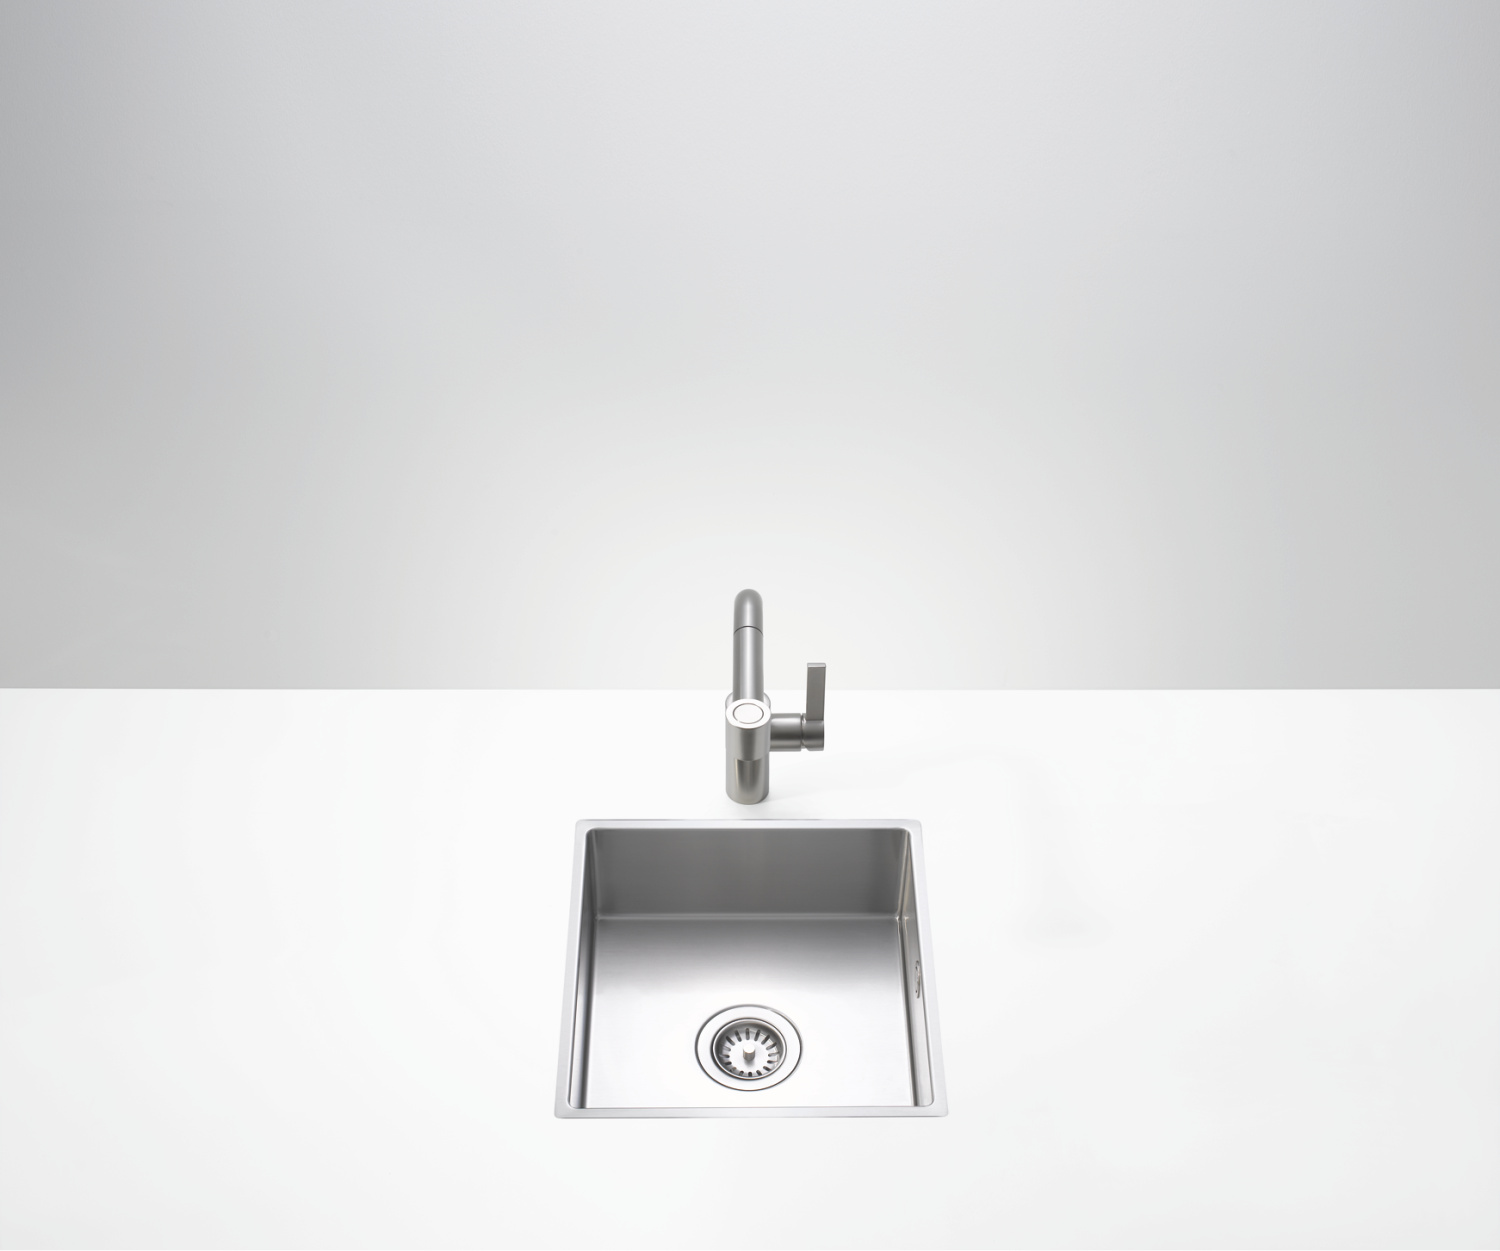 Single bowl sink - matte stainless steel